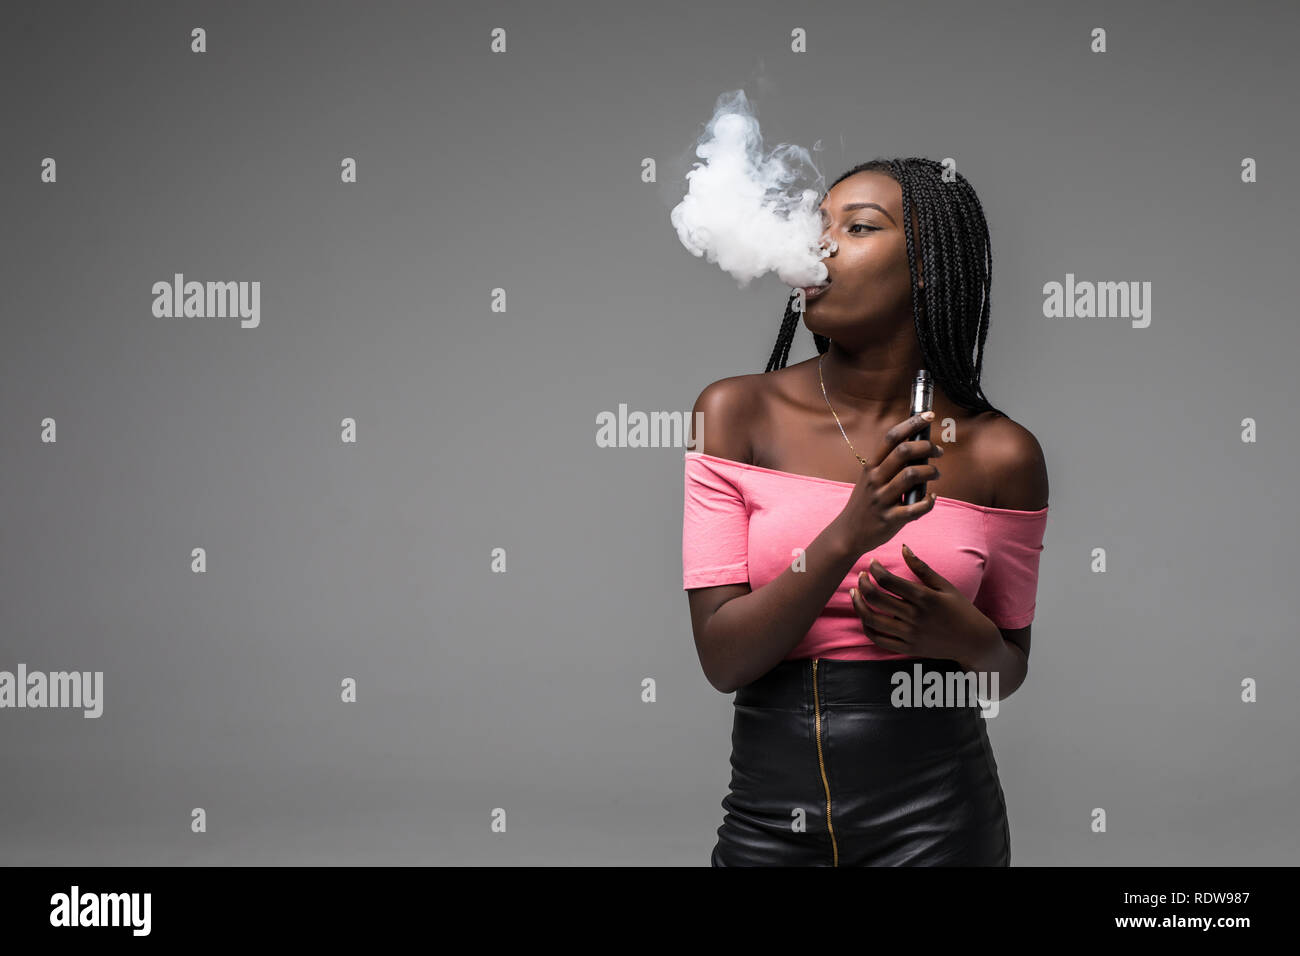 Portrait of young african woman standing with vape device in hand on gray background - Stock Image